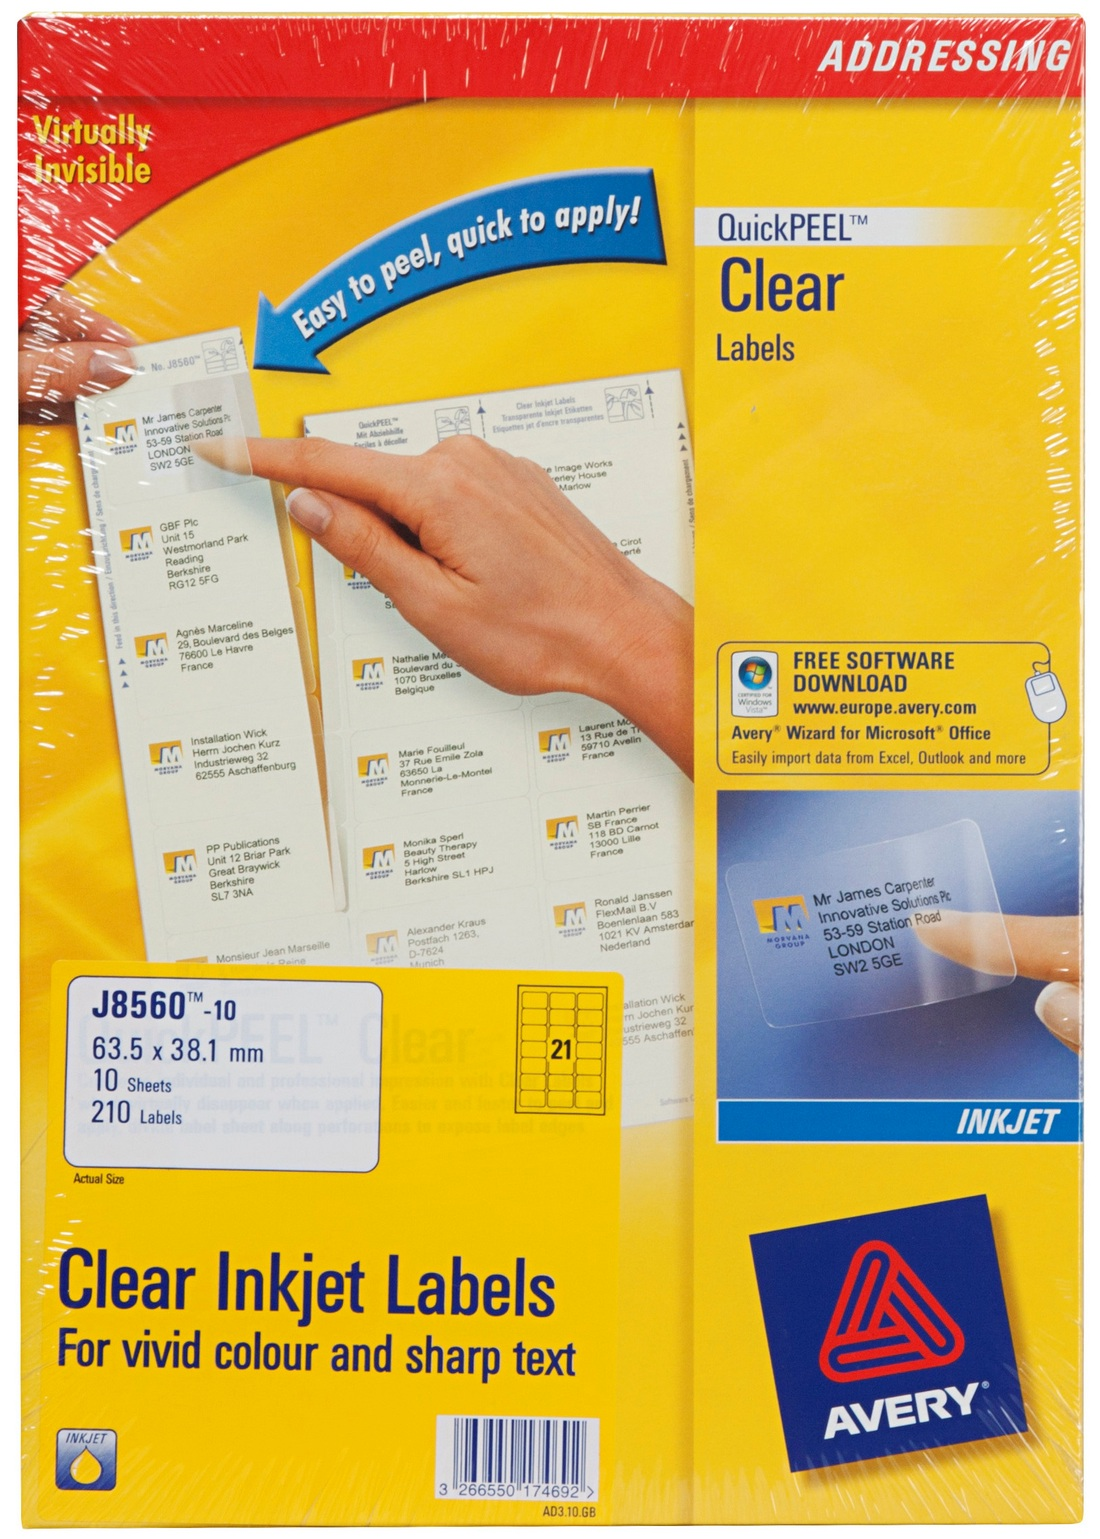 This is a photo of Refreshing Avery A4 Label Sheets